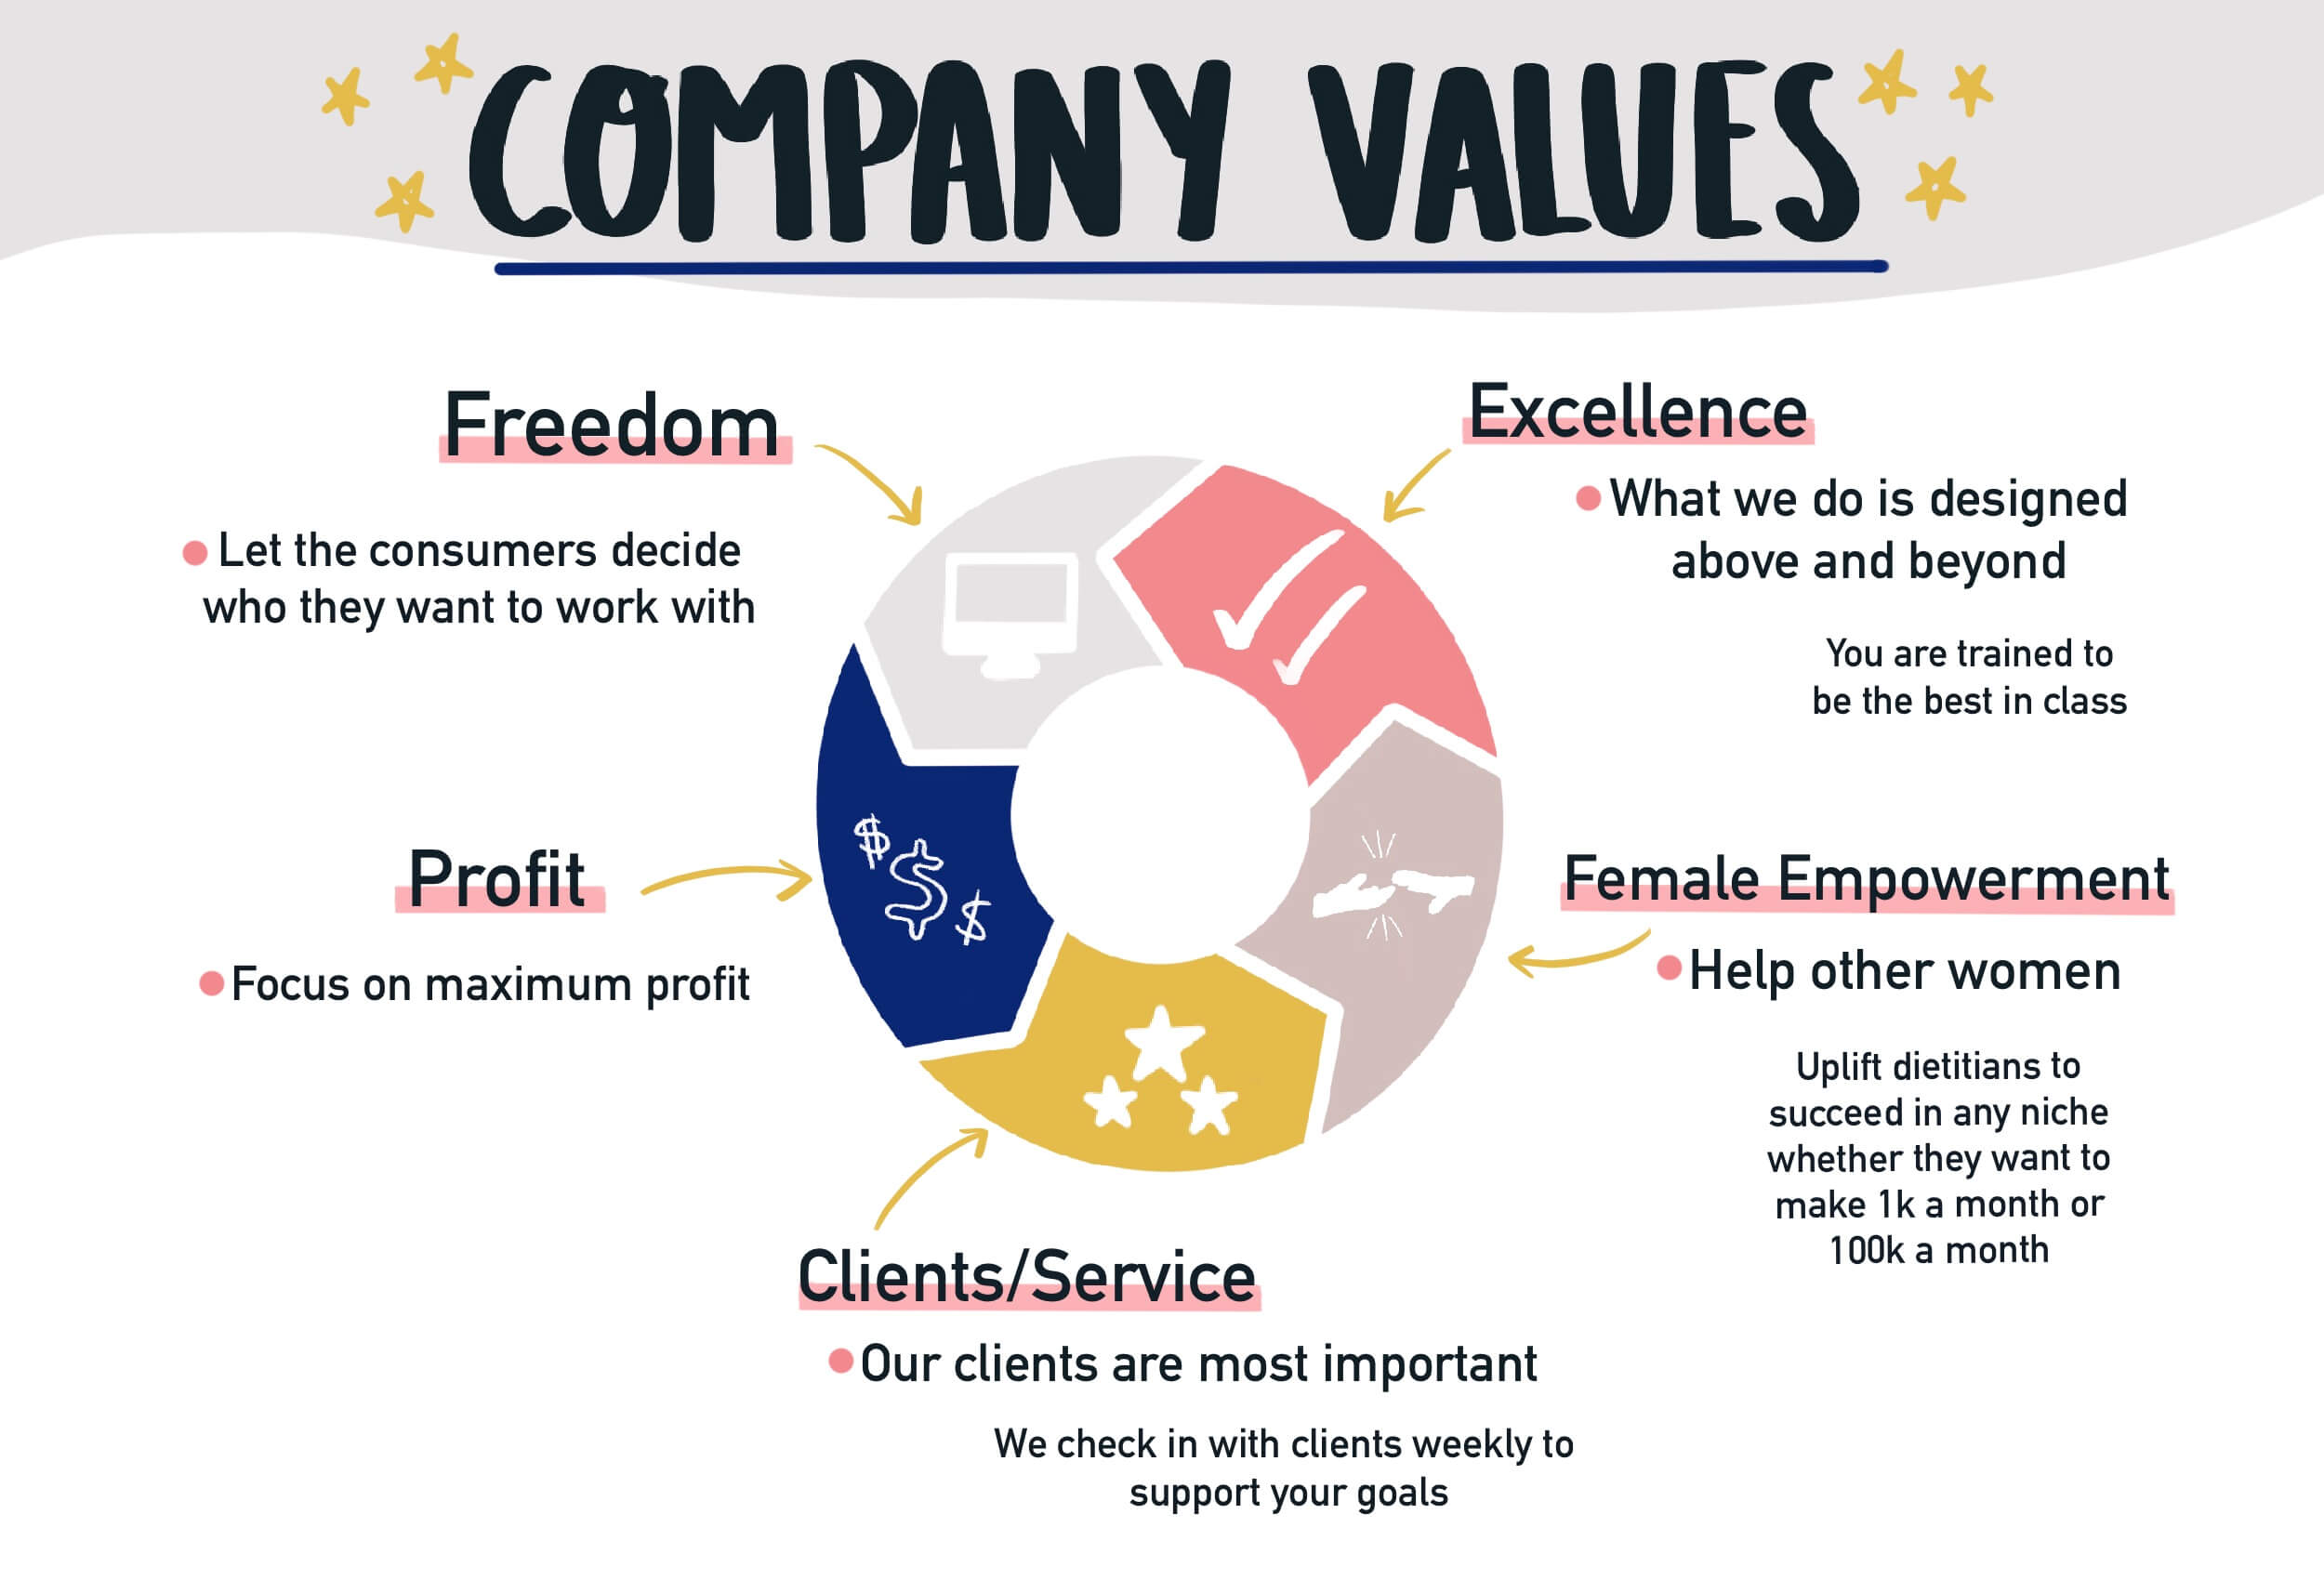 companyvalues-revised